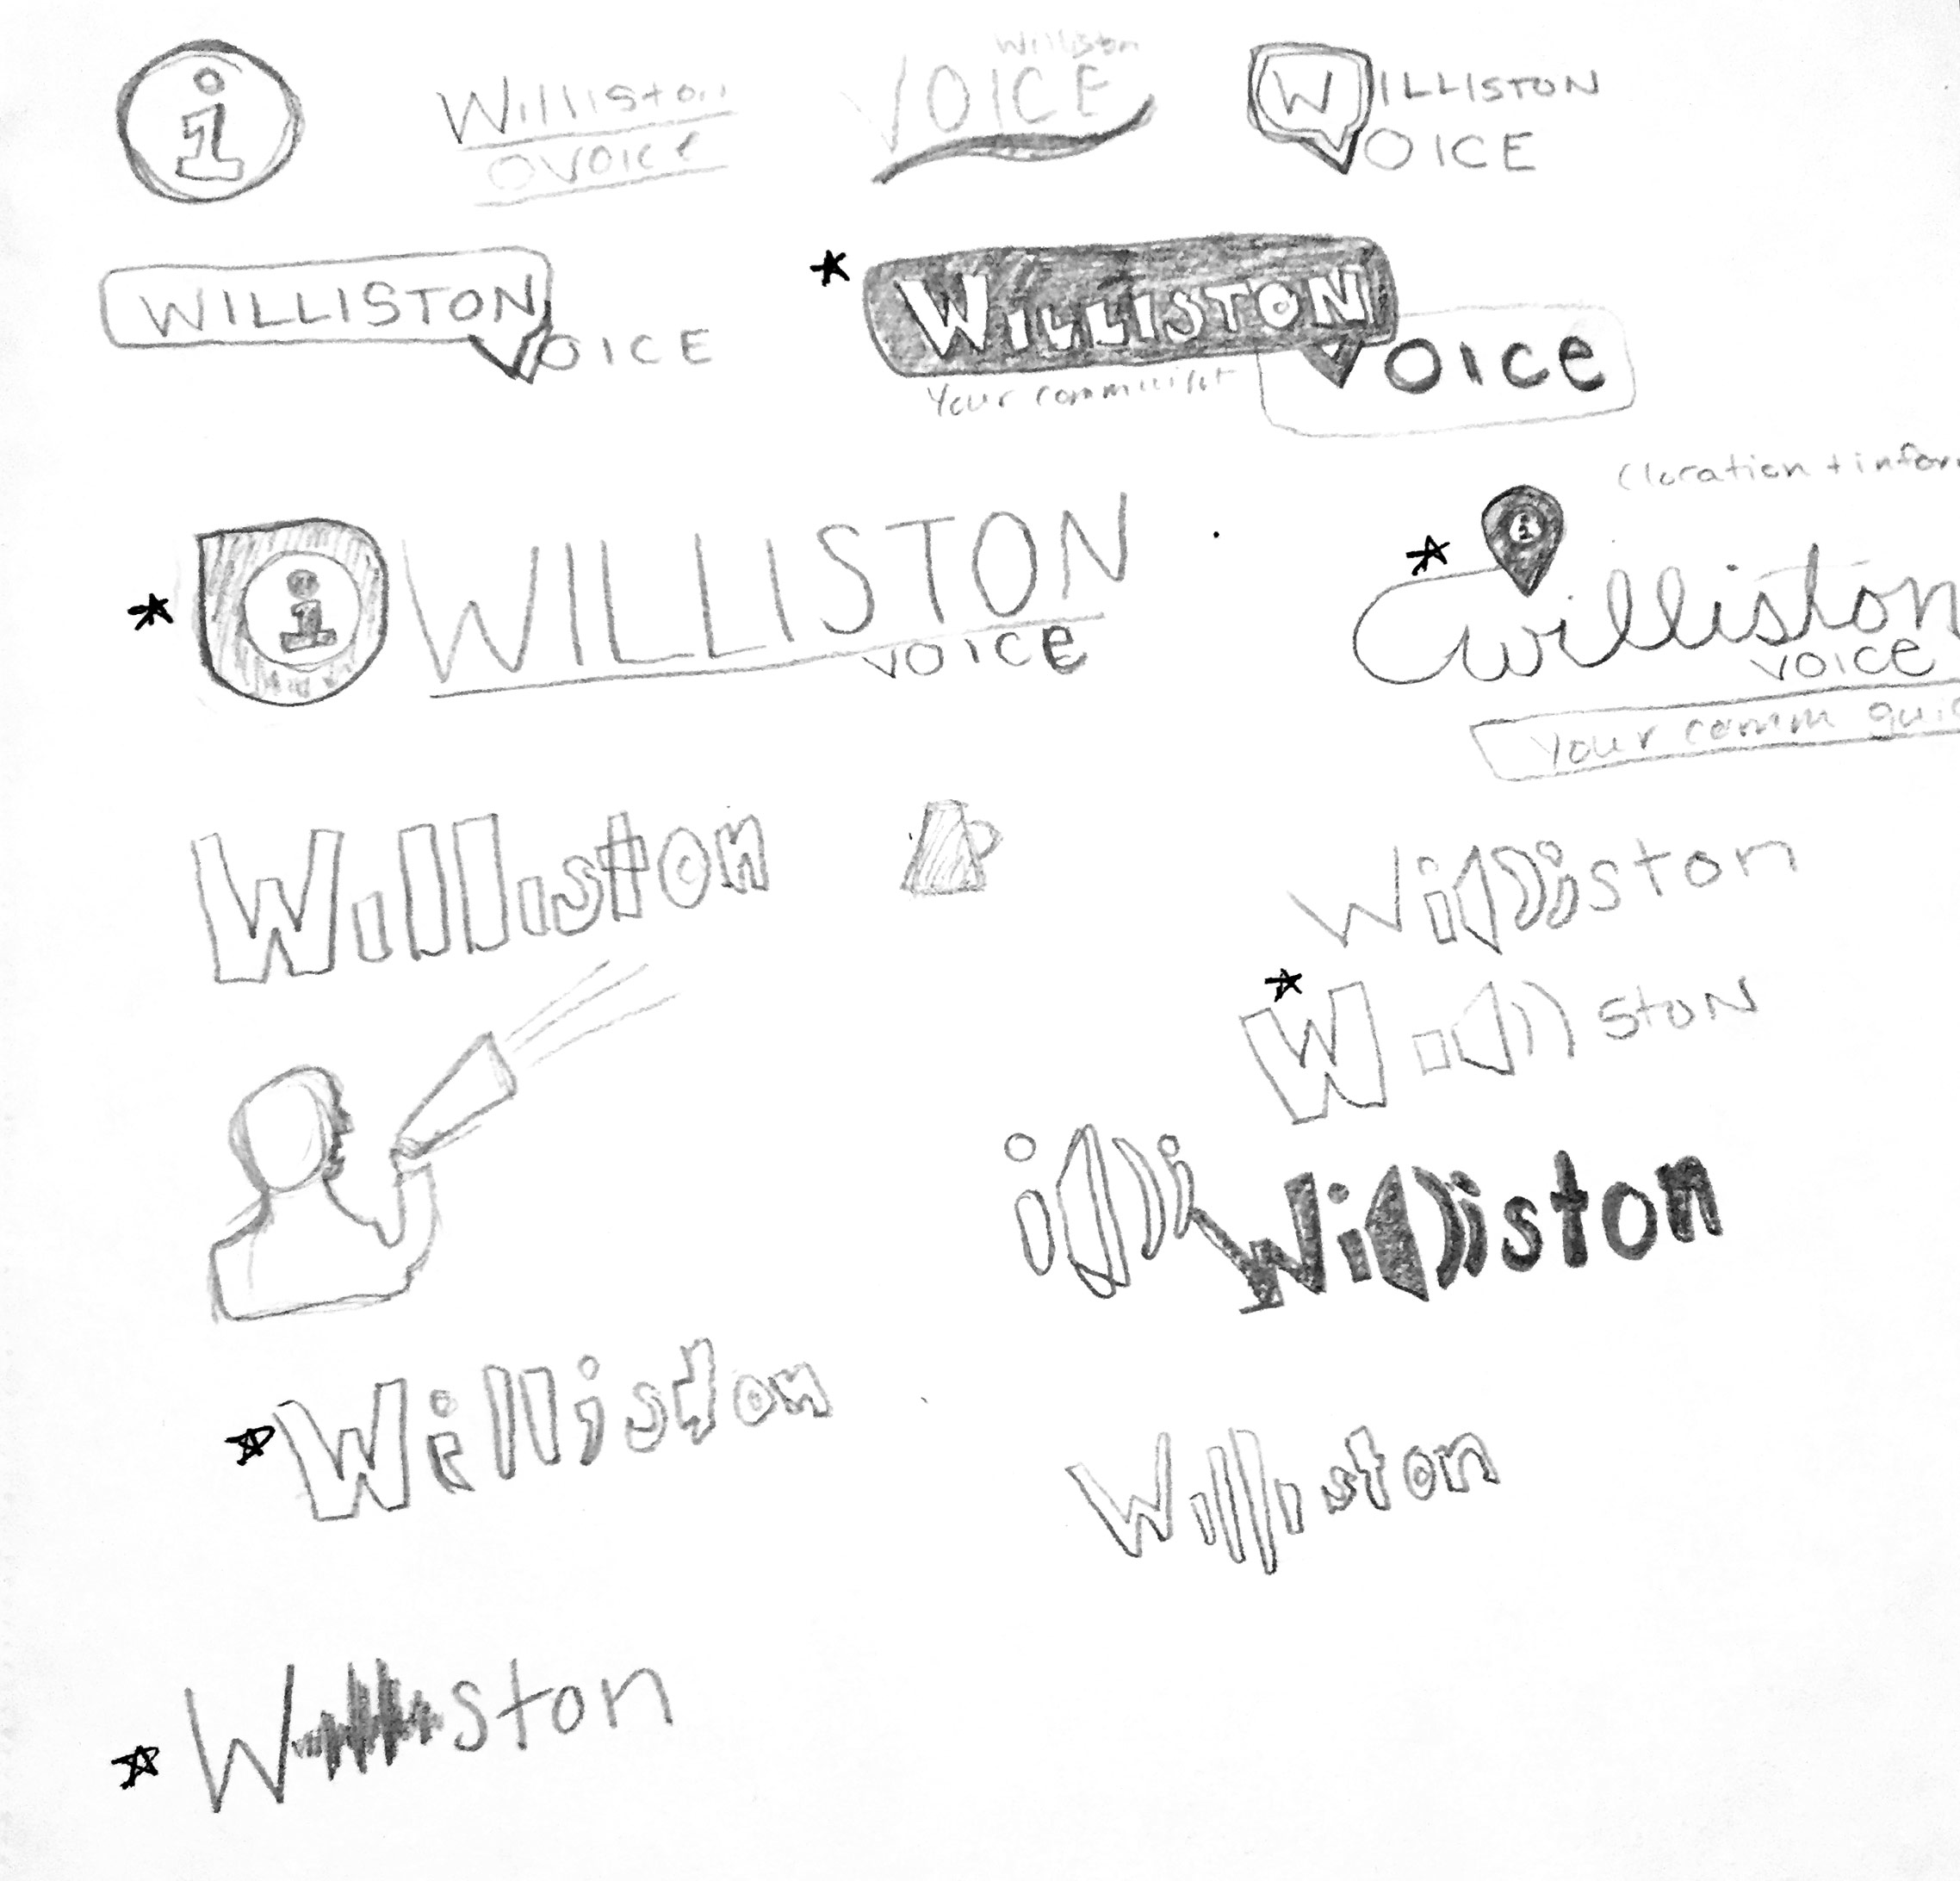 Initial logo design sketches for Williston Voice